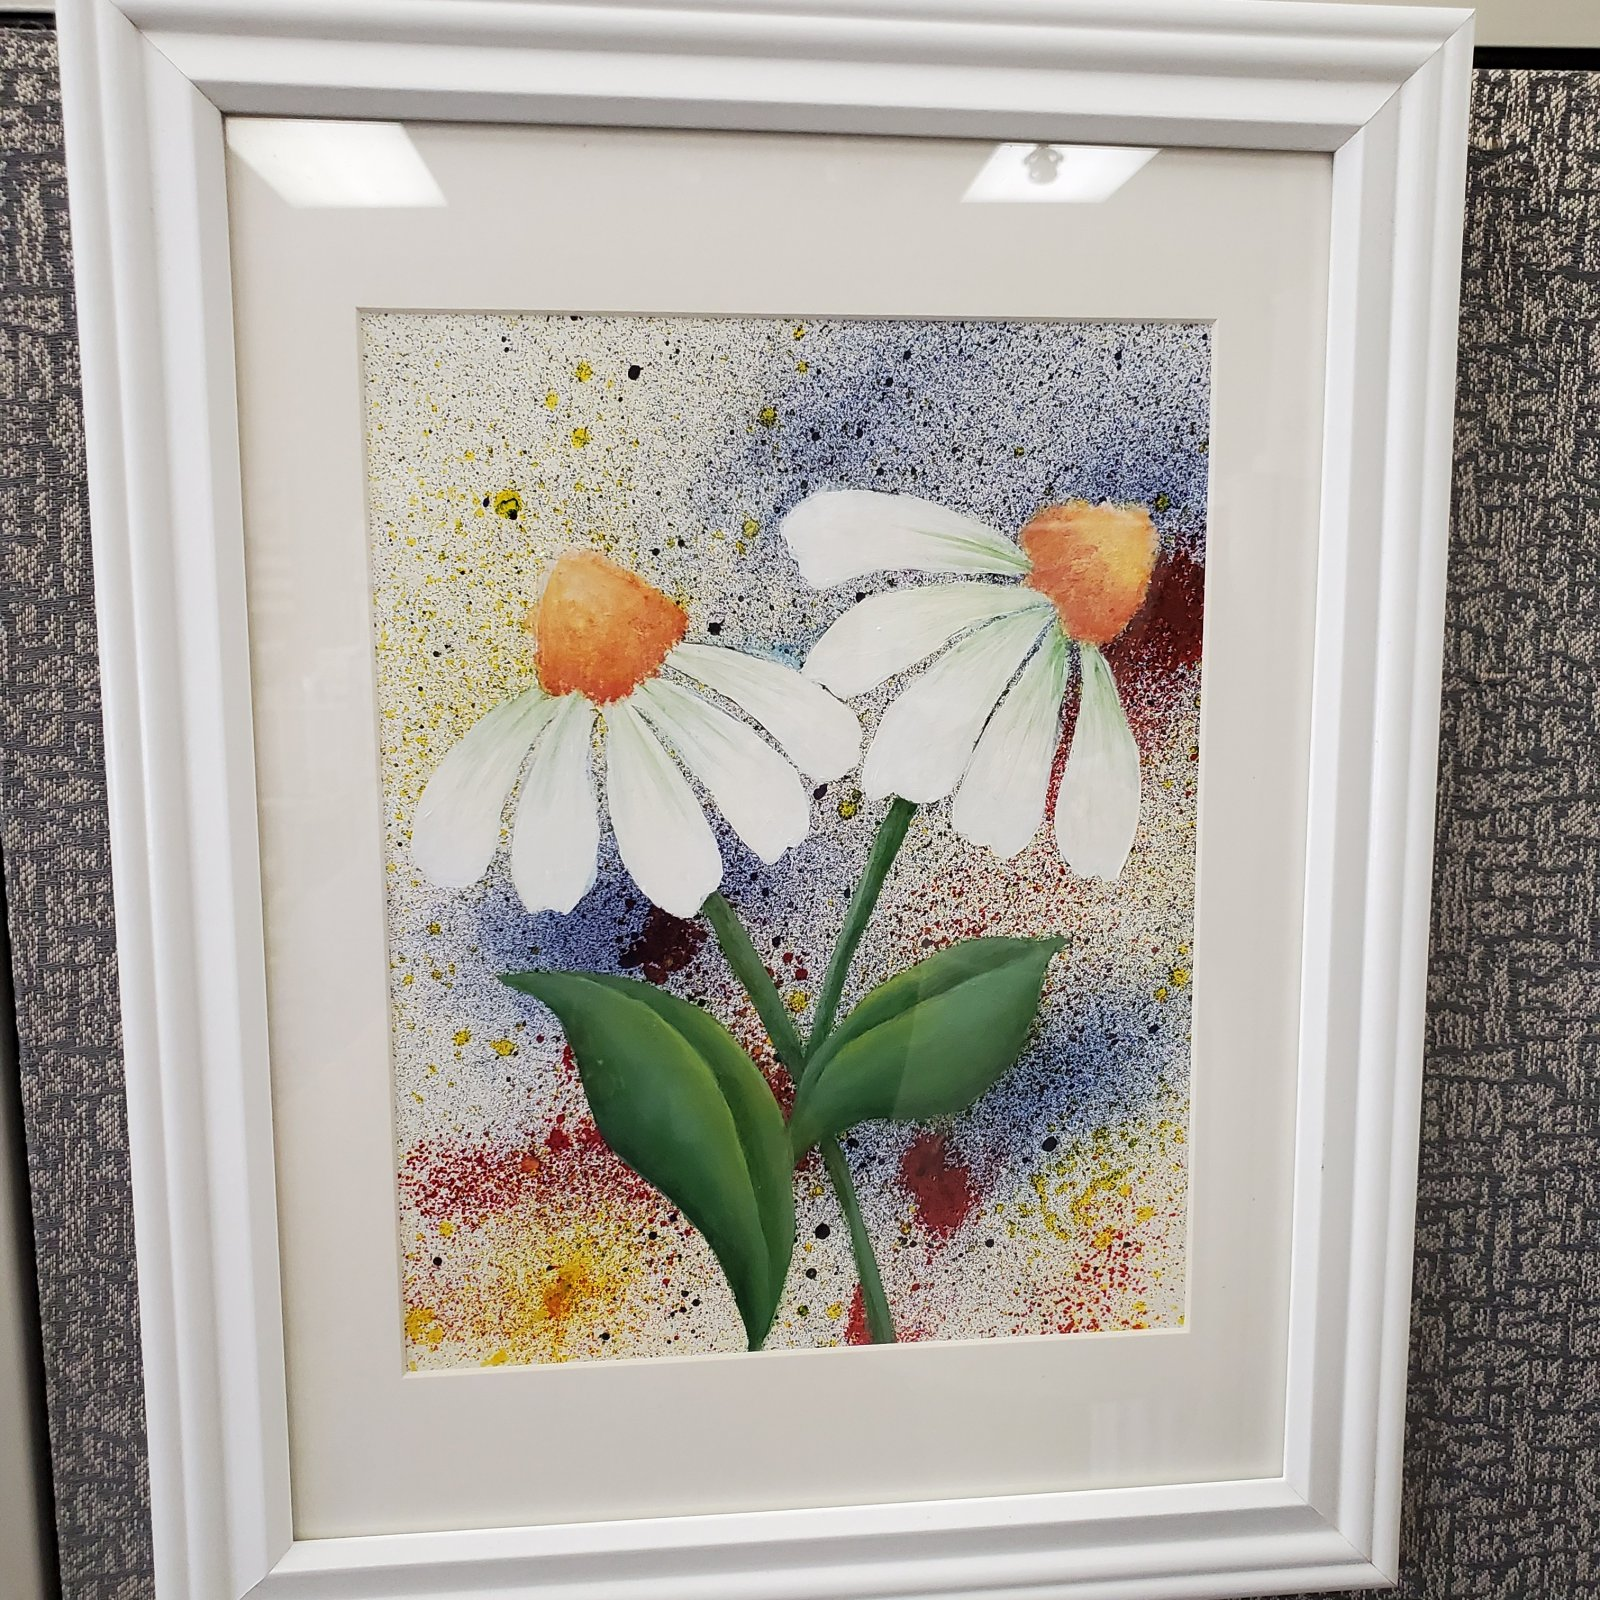 15 -framed cone flowers